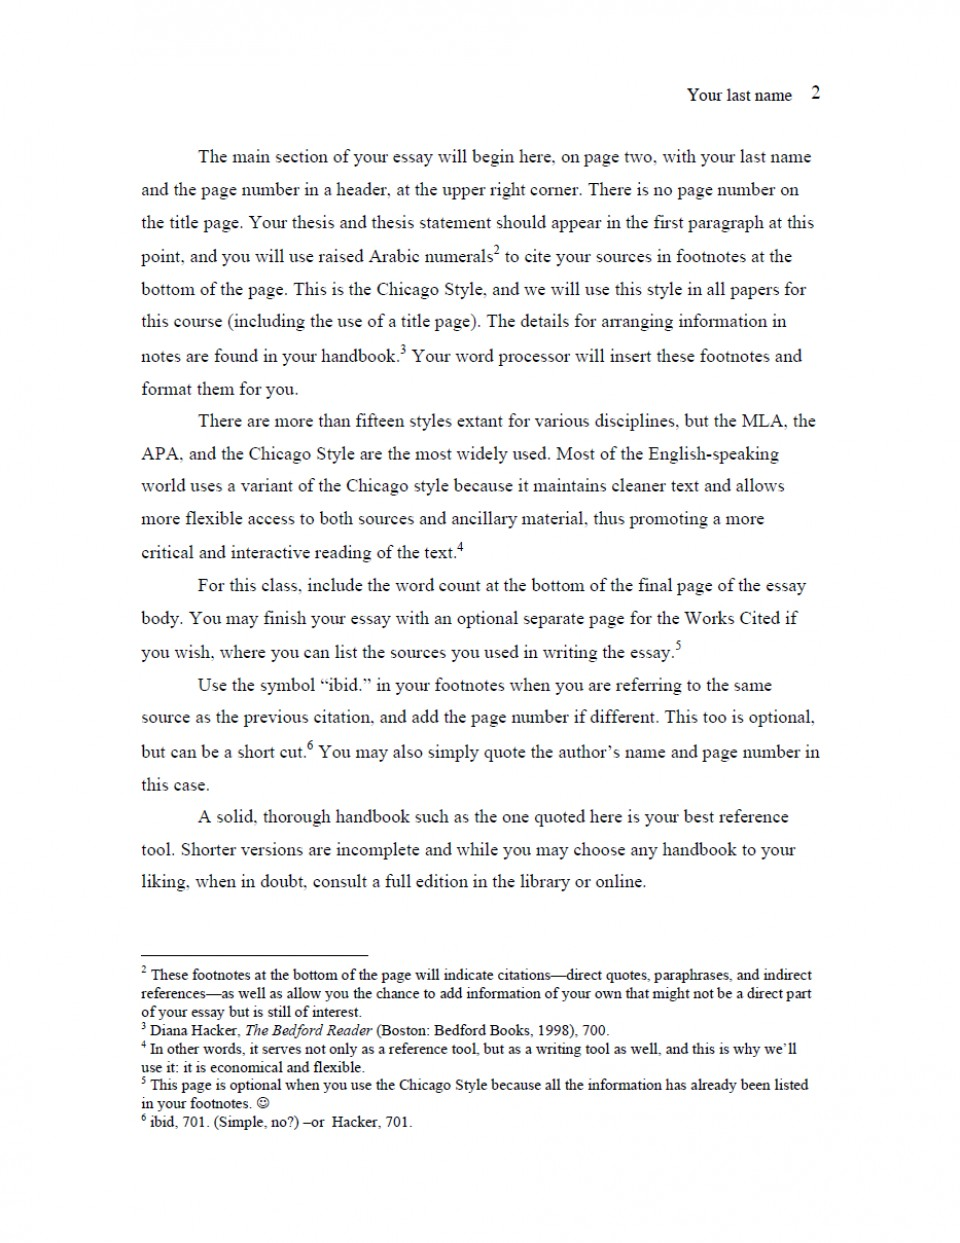 006 Template For Research Paper Chicago Style Paper2 Striking Ieee Word Outline Format Of Front Page 960